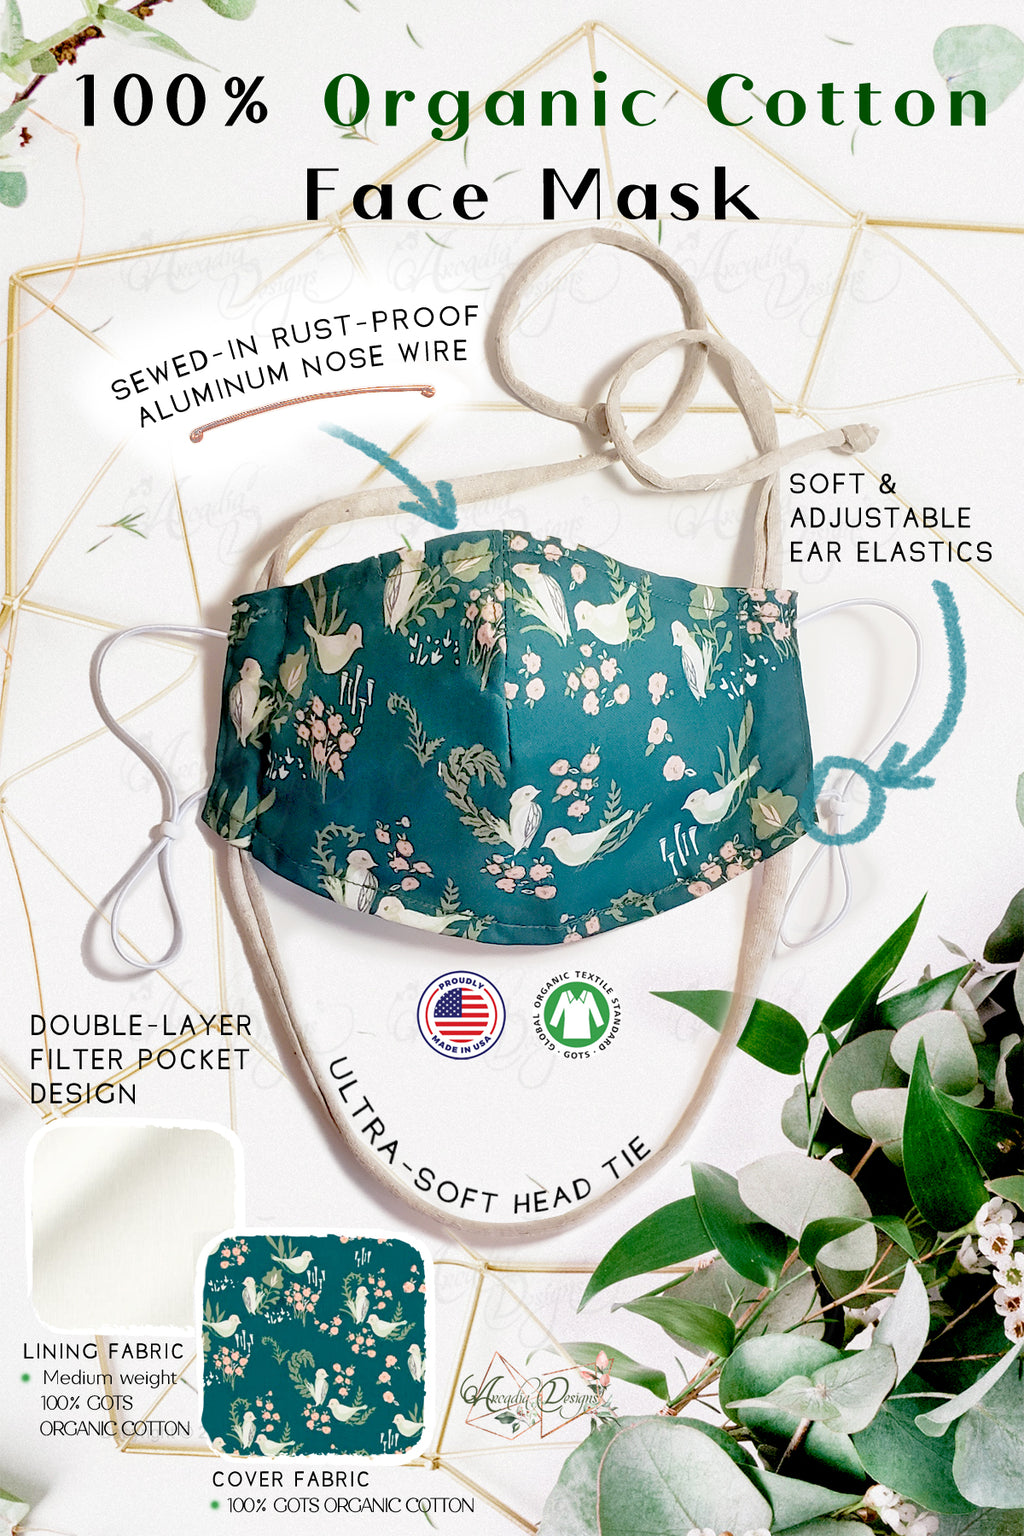 Turquoise bird and flower wild animal print 3D cup shape filter pocket double layer GOTS certified Organic Cotton cloth face mask with nose wire head tie by Arcadia Designs LLC handmade  made in USA